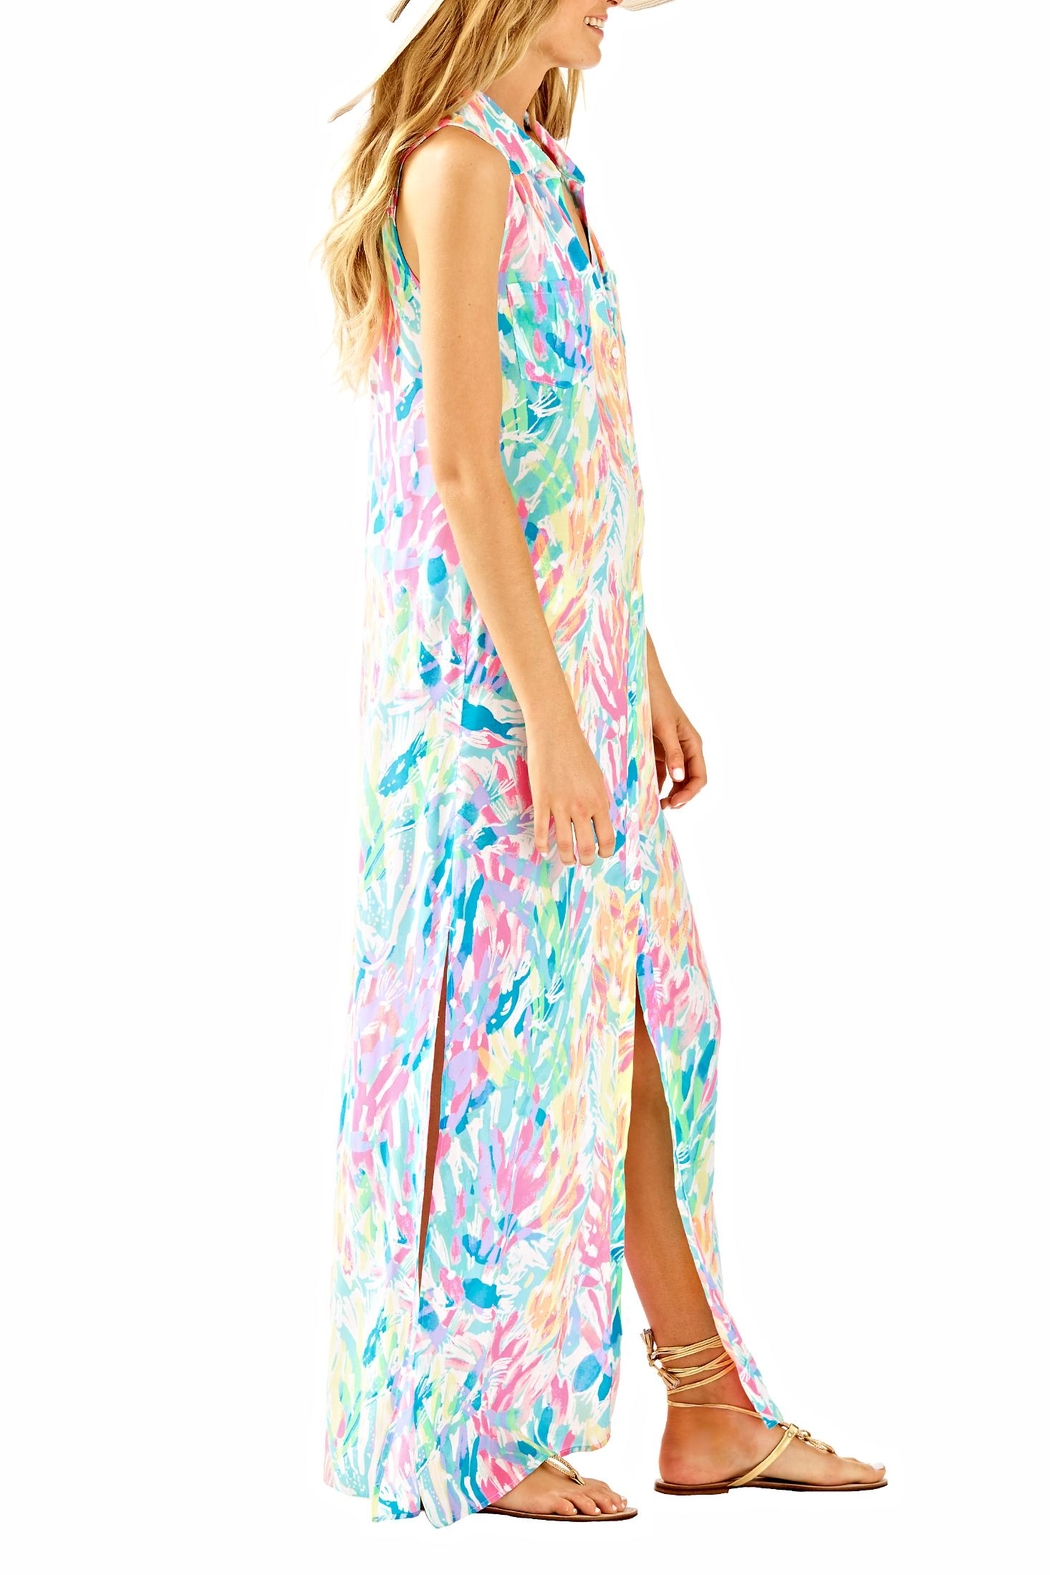 Lilly Pulitzer Ezra Maxi Beach Dress - Side Cropped Image